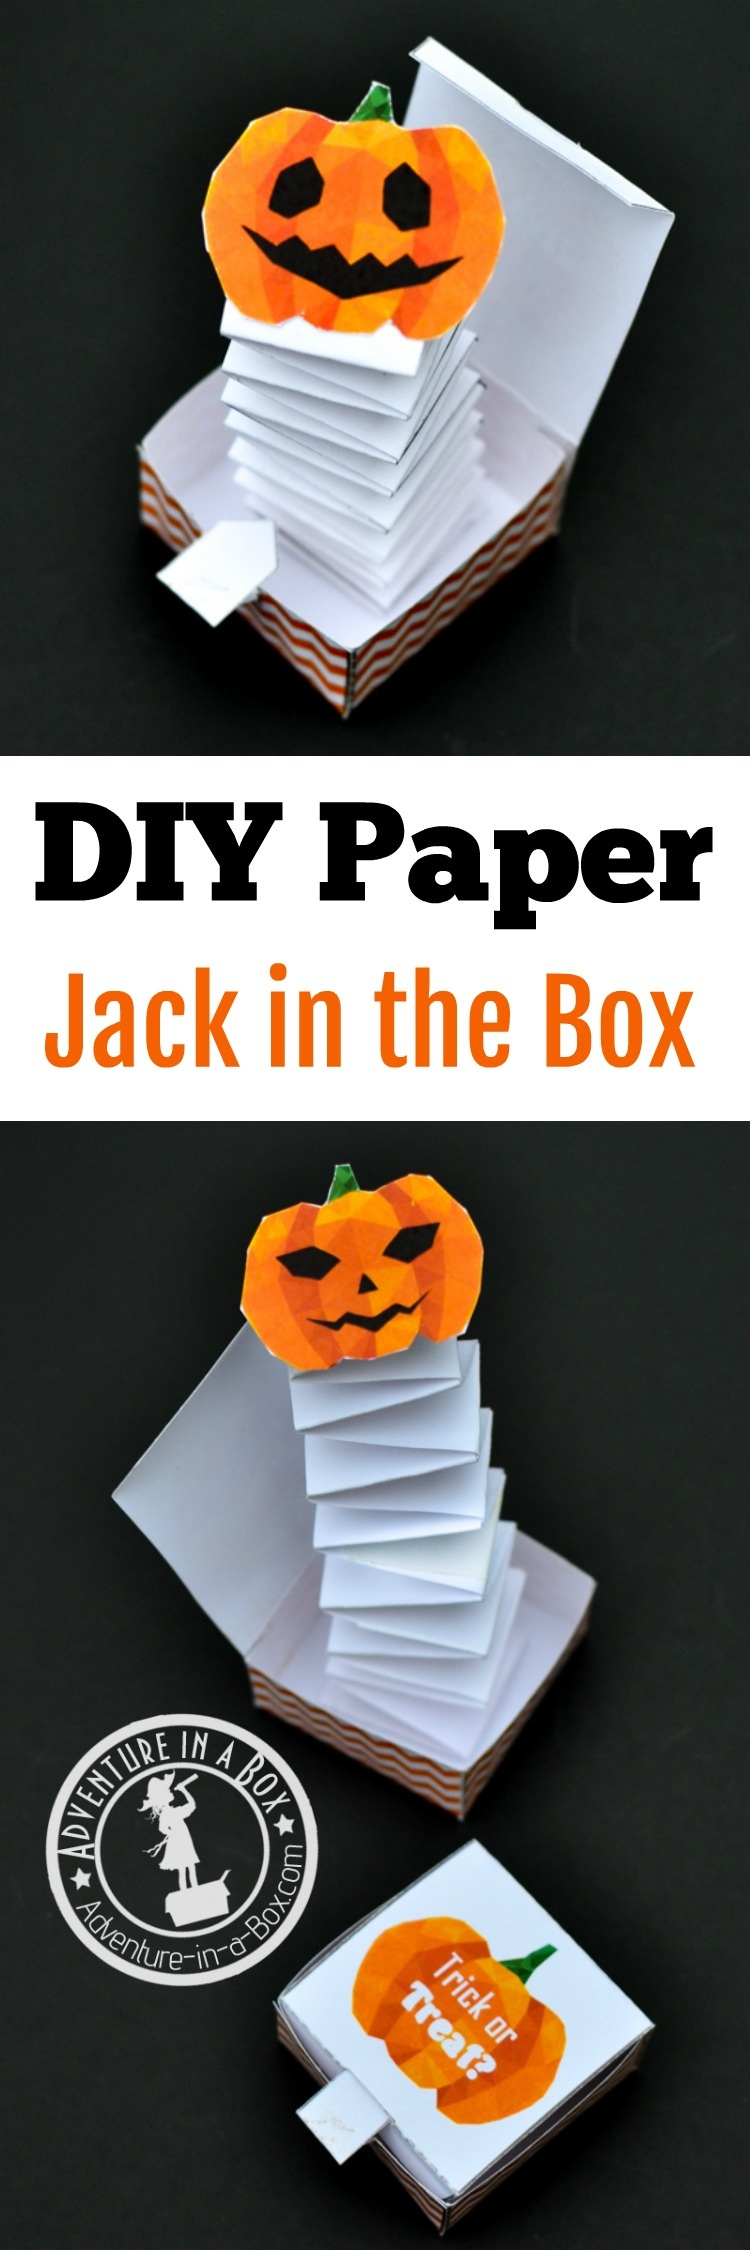 Jack In The Box Paper Toy With A Free Printable Template   Adventure - Free Printable Halloween Paper Crafts